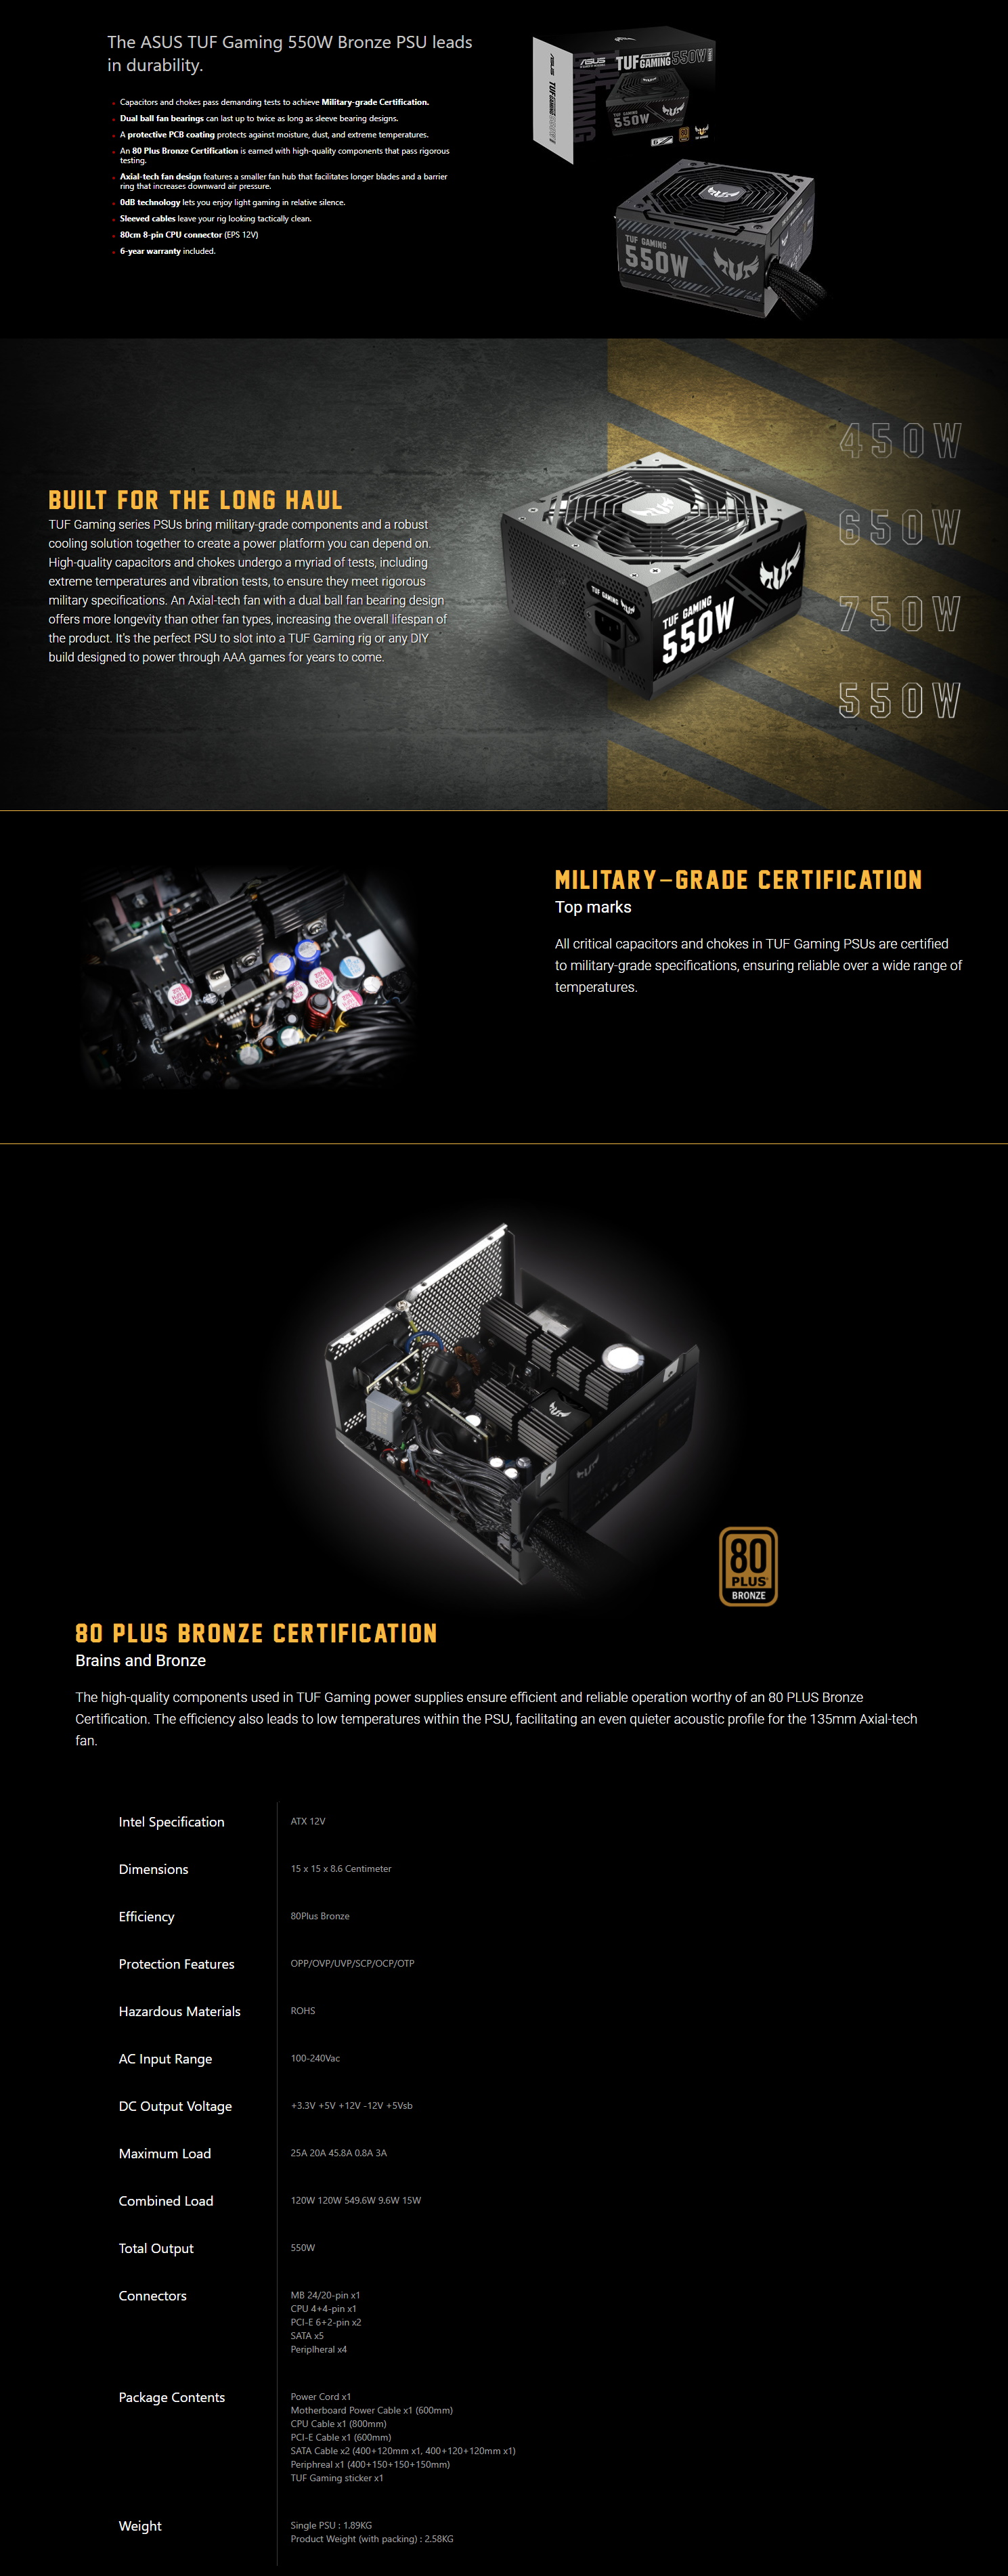 A large marketing image providing additional information about the product ASUS TUF-Gaming 550W 80PLUS Bronze Power Supply - Additional alt info not provided